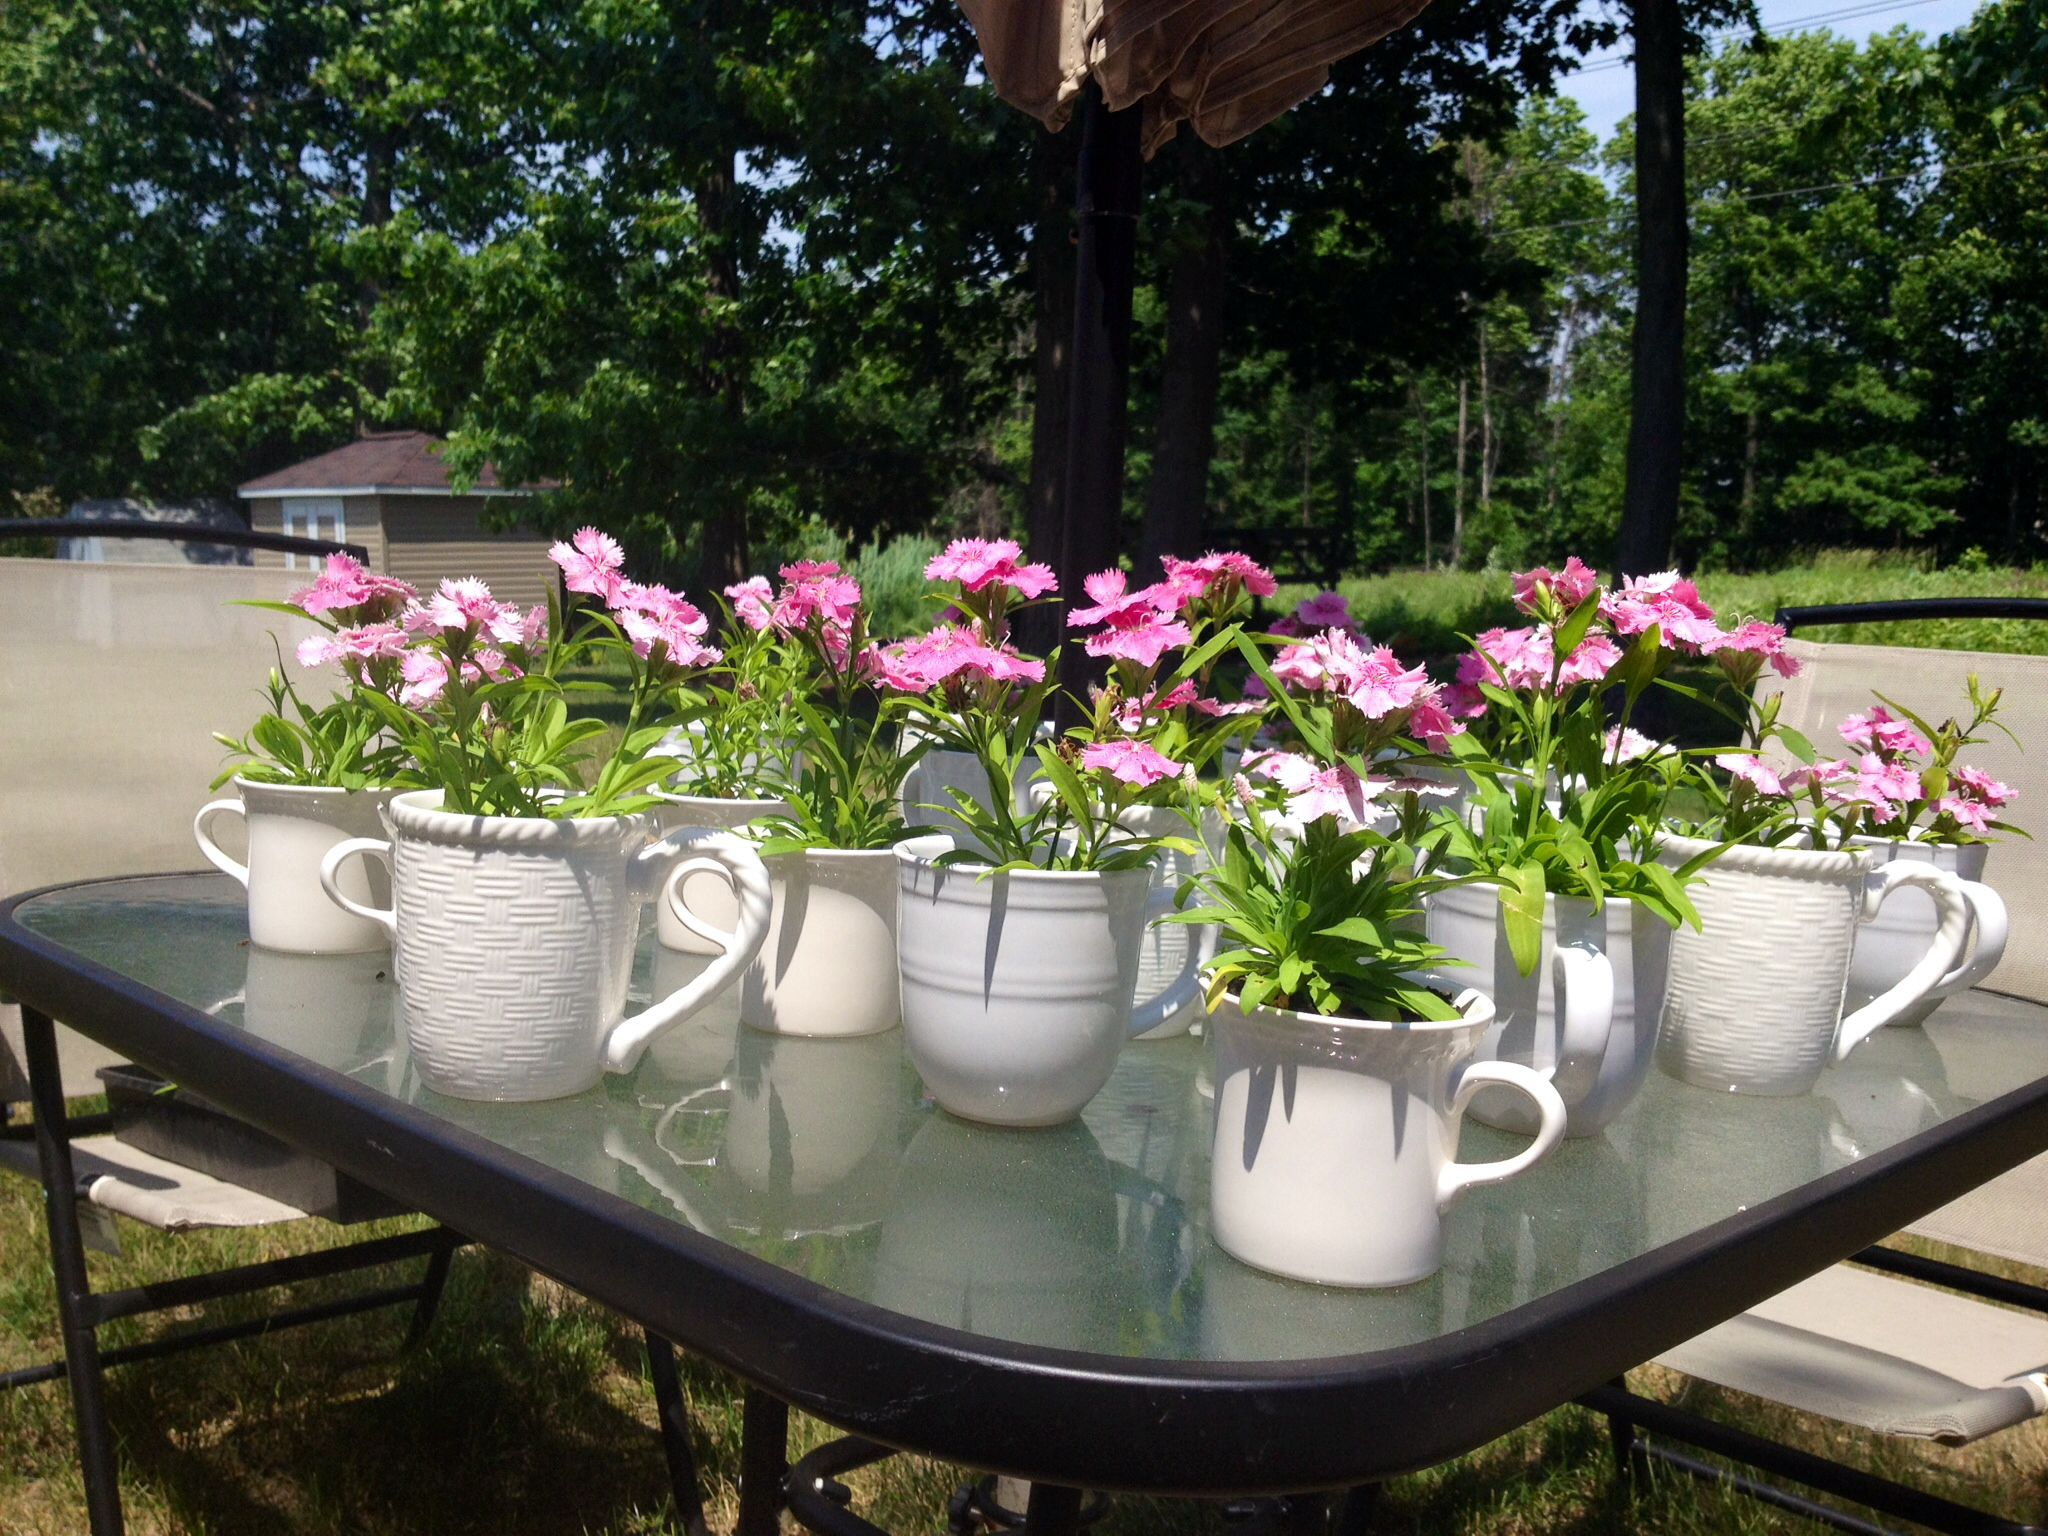 Coffee Cup Table Decor For Moms 75th Birthday